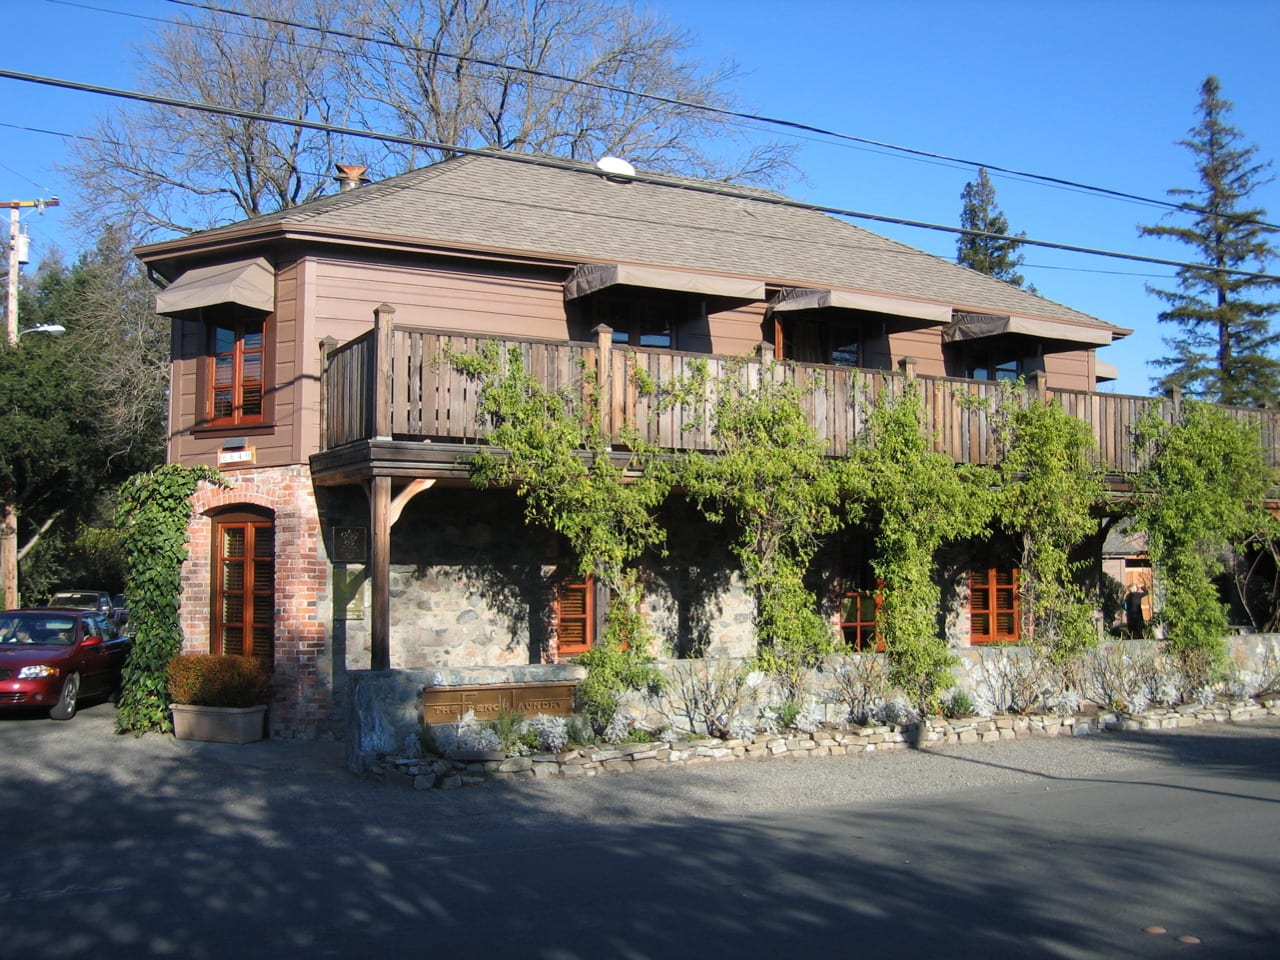 Most Expensive restaurants - The French laundry